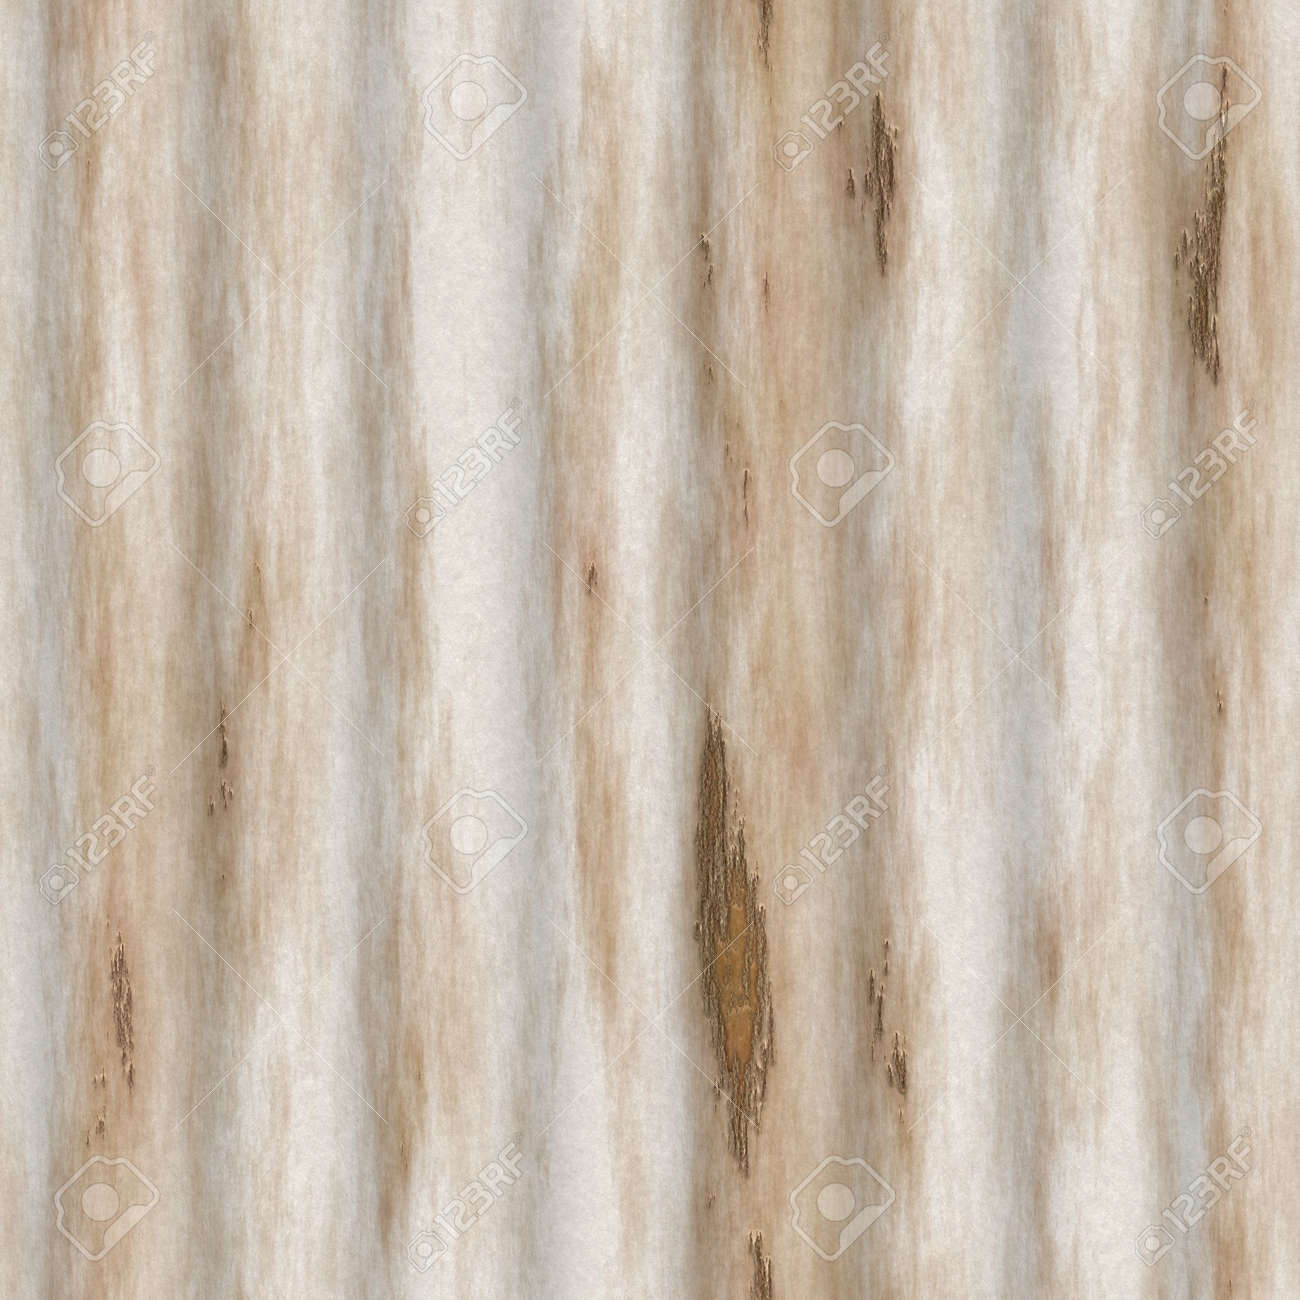 Corrugated Metal Seamless Texture Tile Stock Photo   14024338. Corrugated Metal Seamless Texture Tile Stock Photo  Picture And